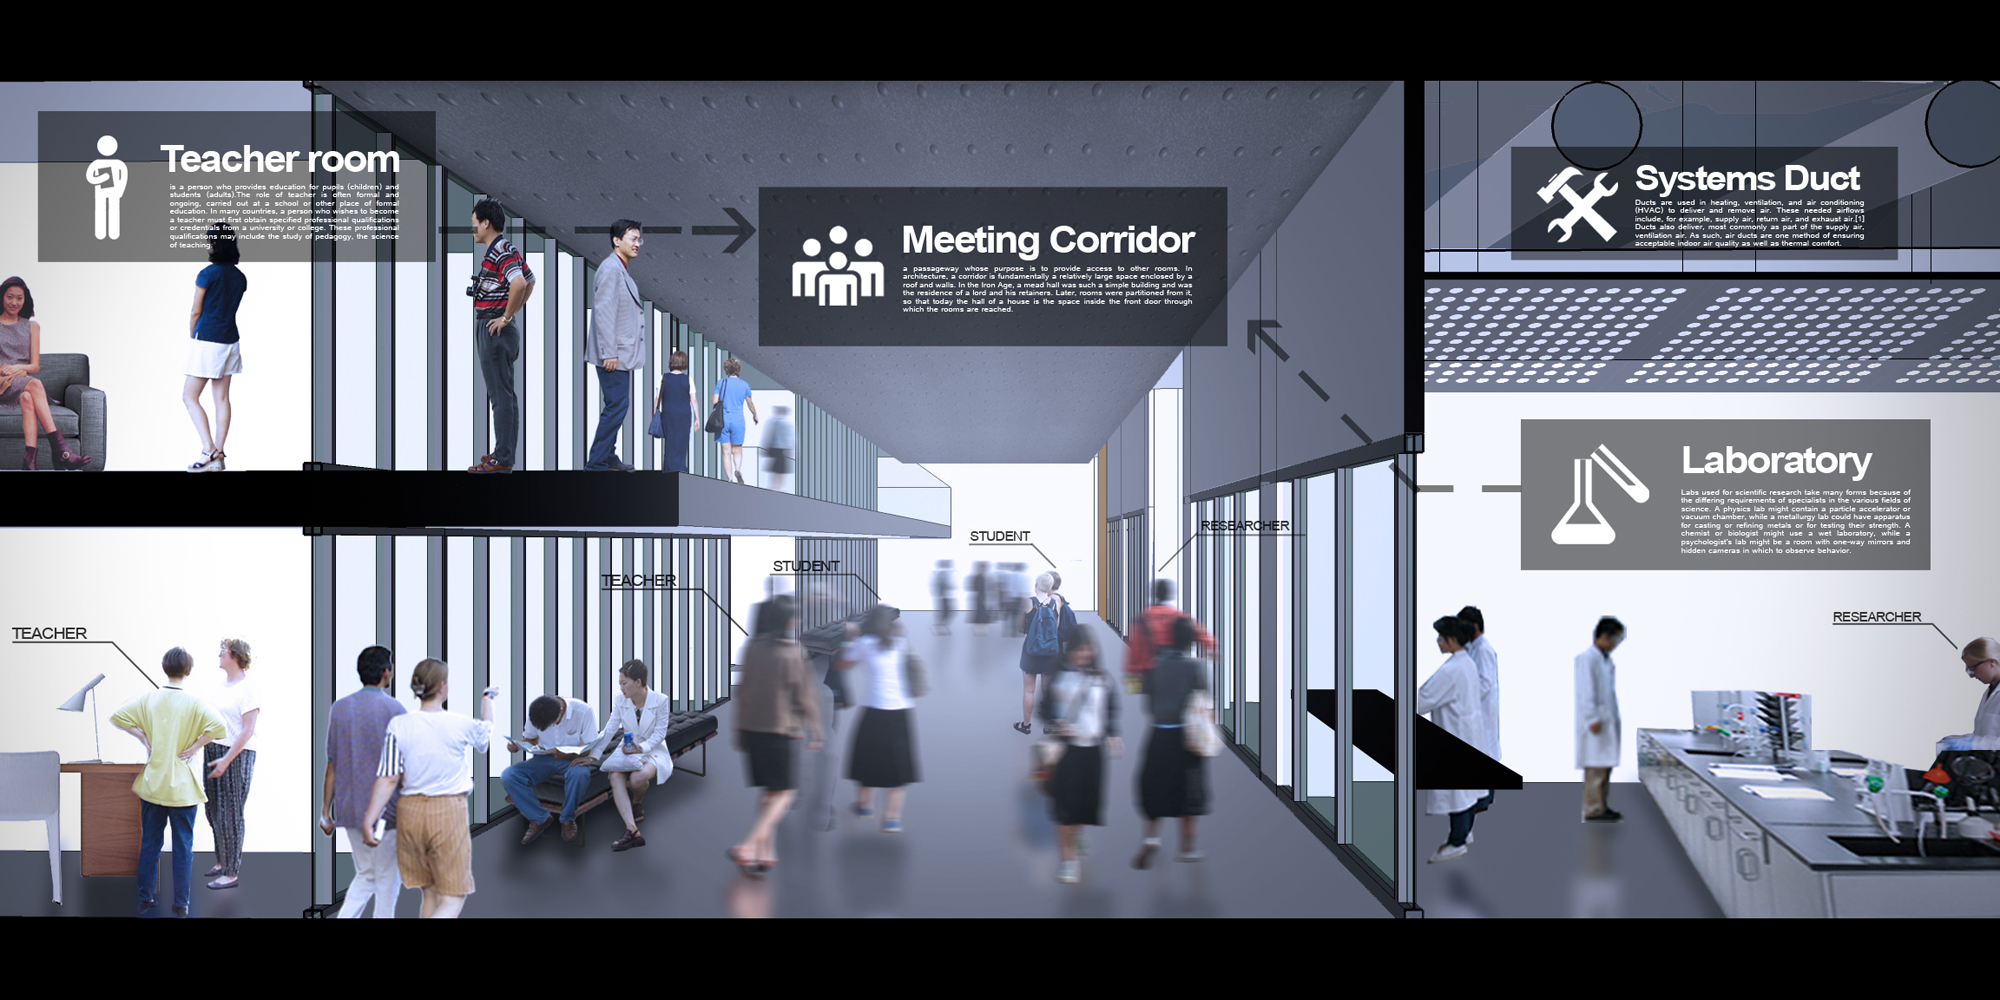 in-meeting corridor